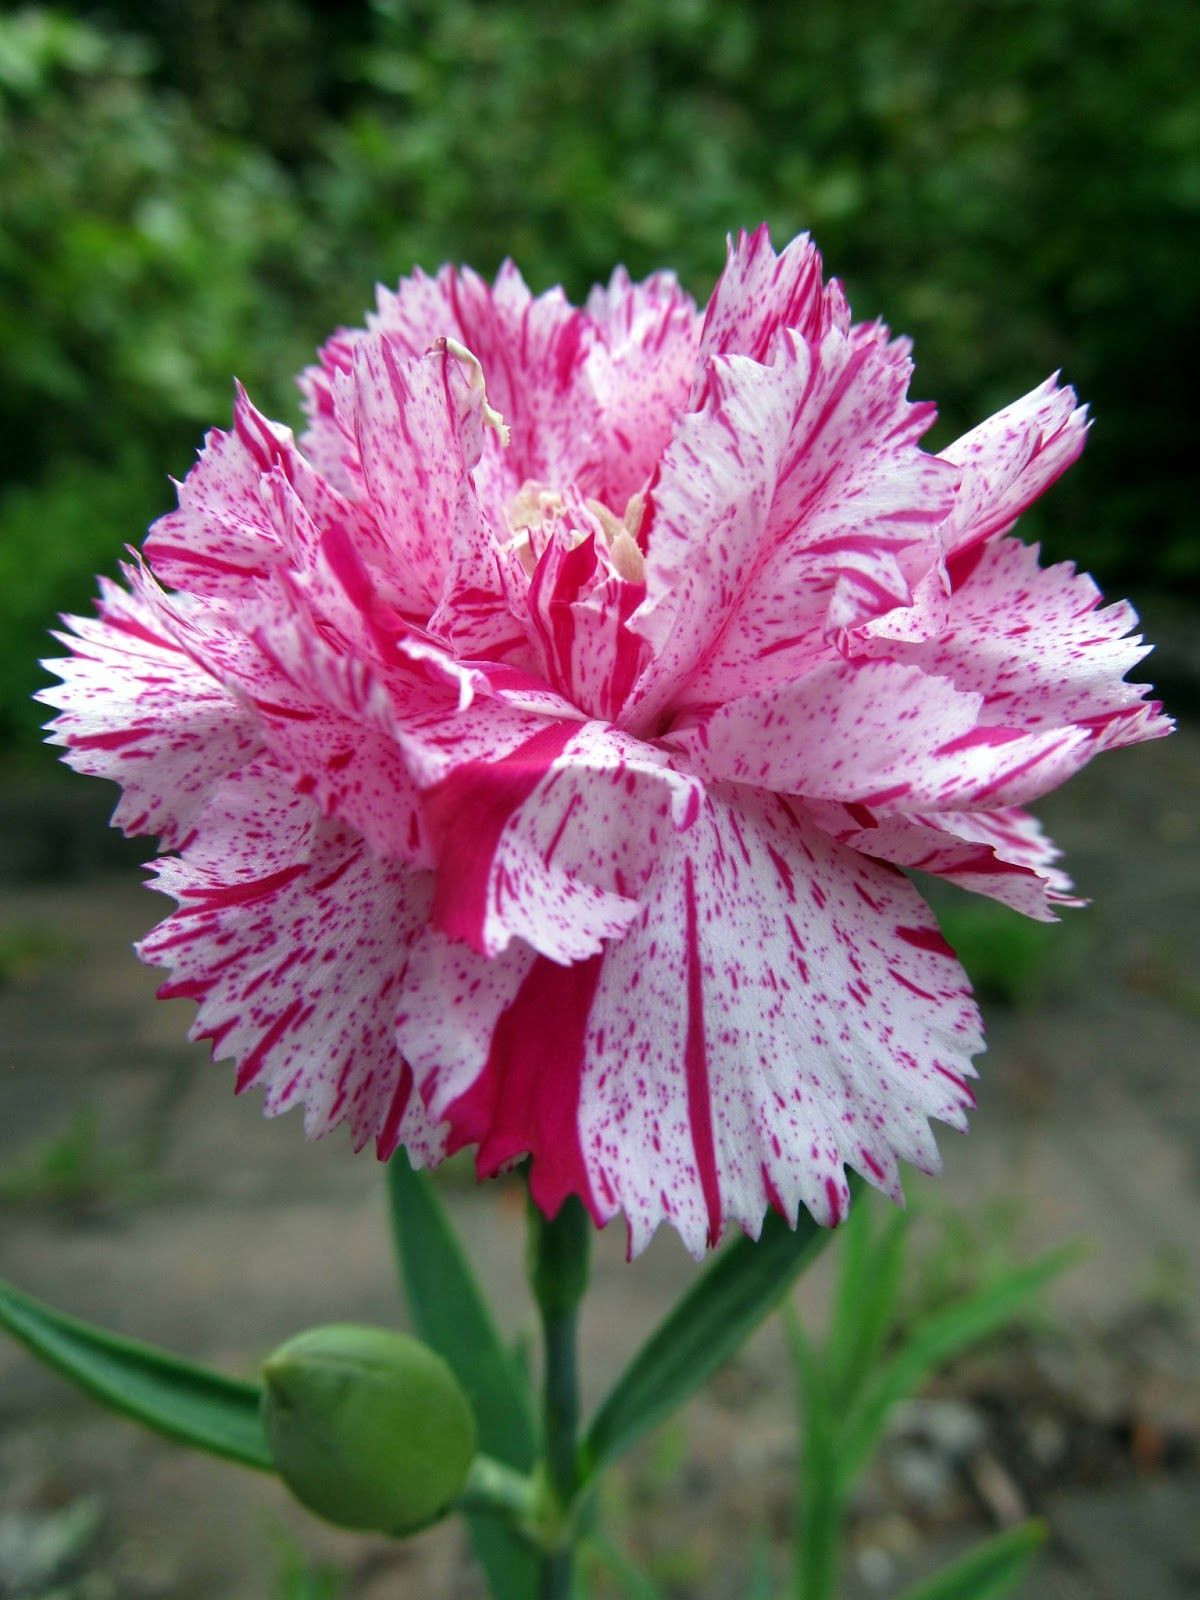 Red and white striped carnations means a refusal